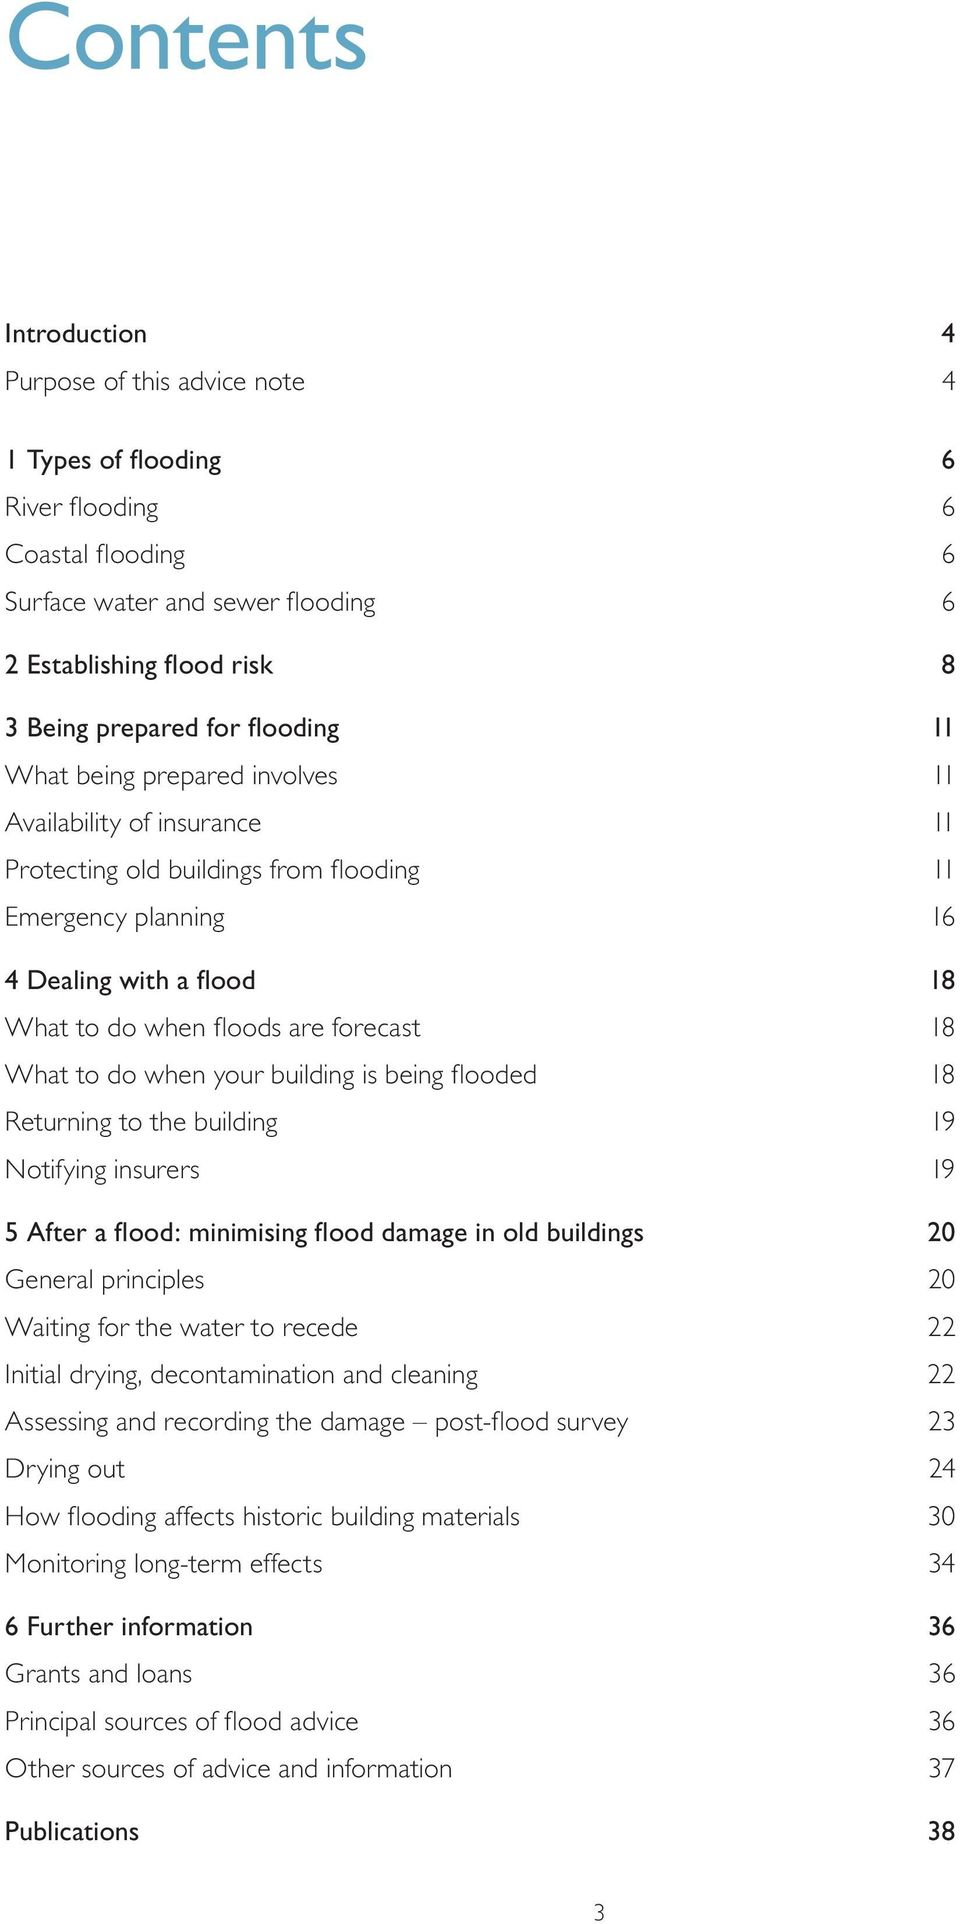 18 What to do when your building is being flooded 18 Returning to the building 19 Notifying insurers 19 5 After a flood: minimising flood damage in old buildings 20 General principles 20 Waiting for